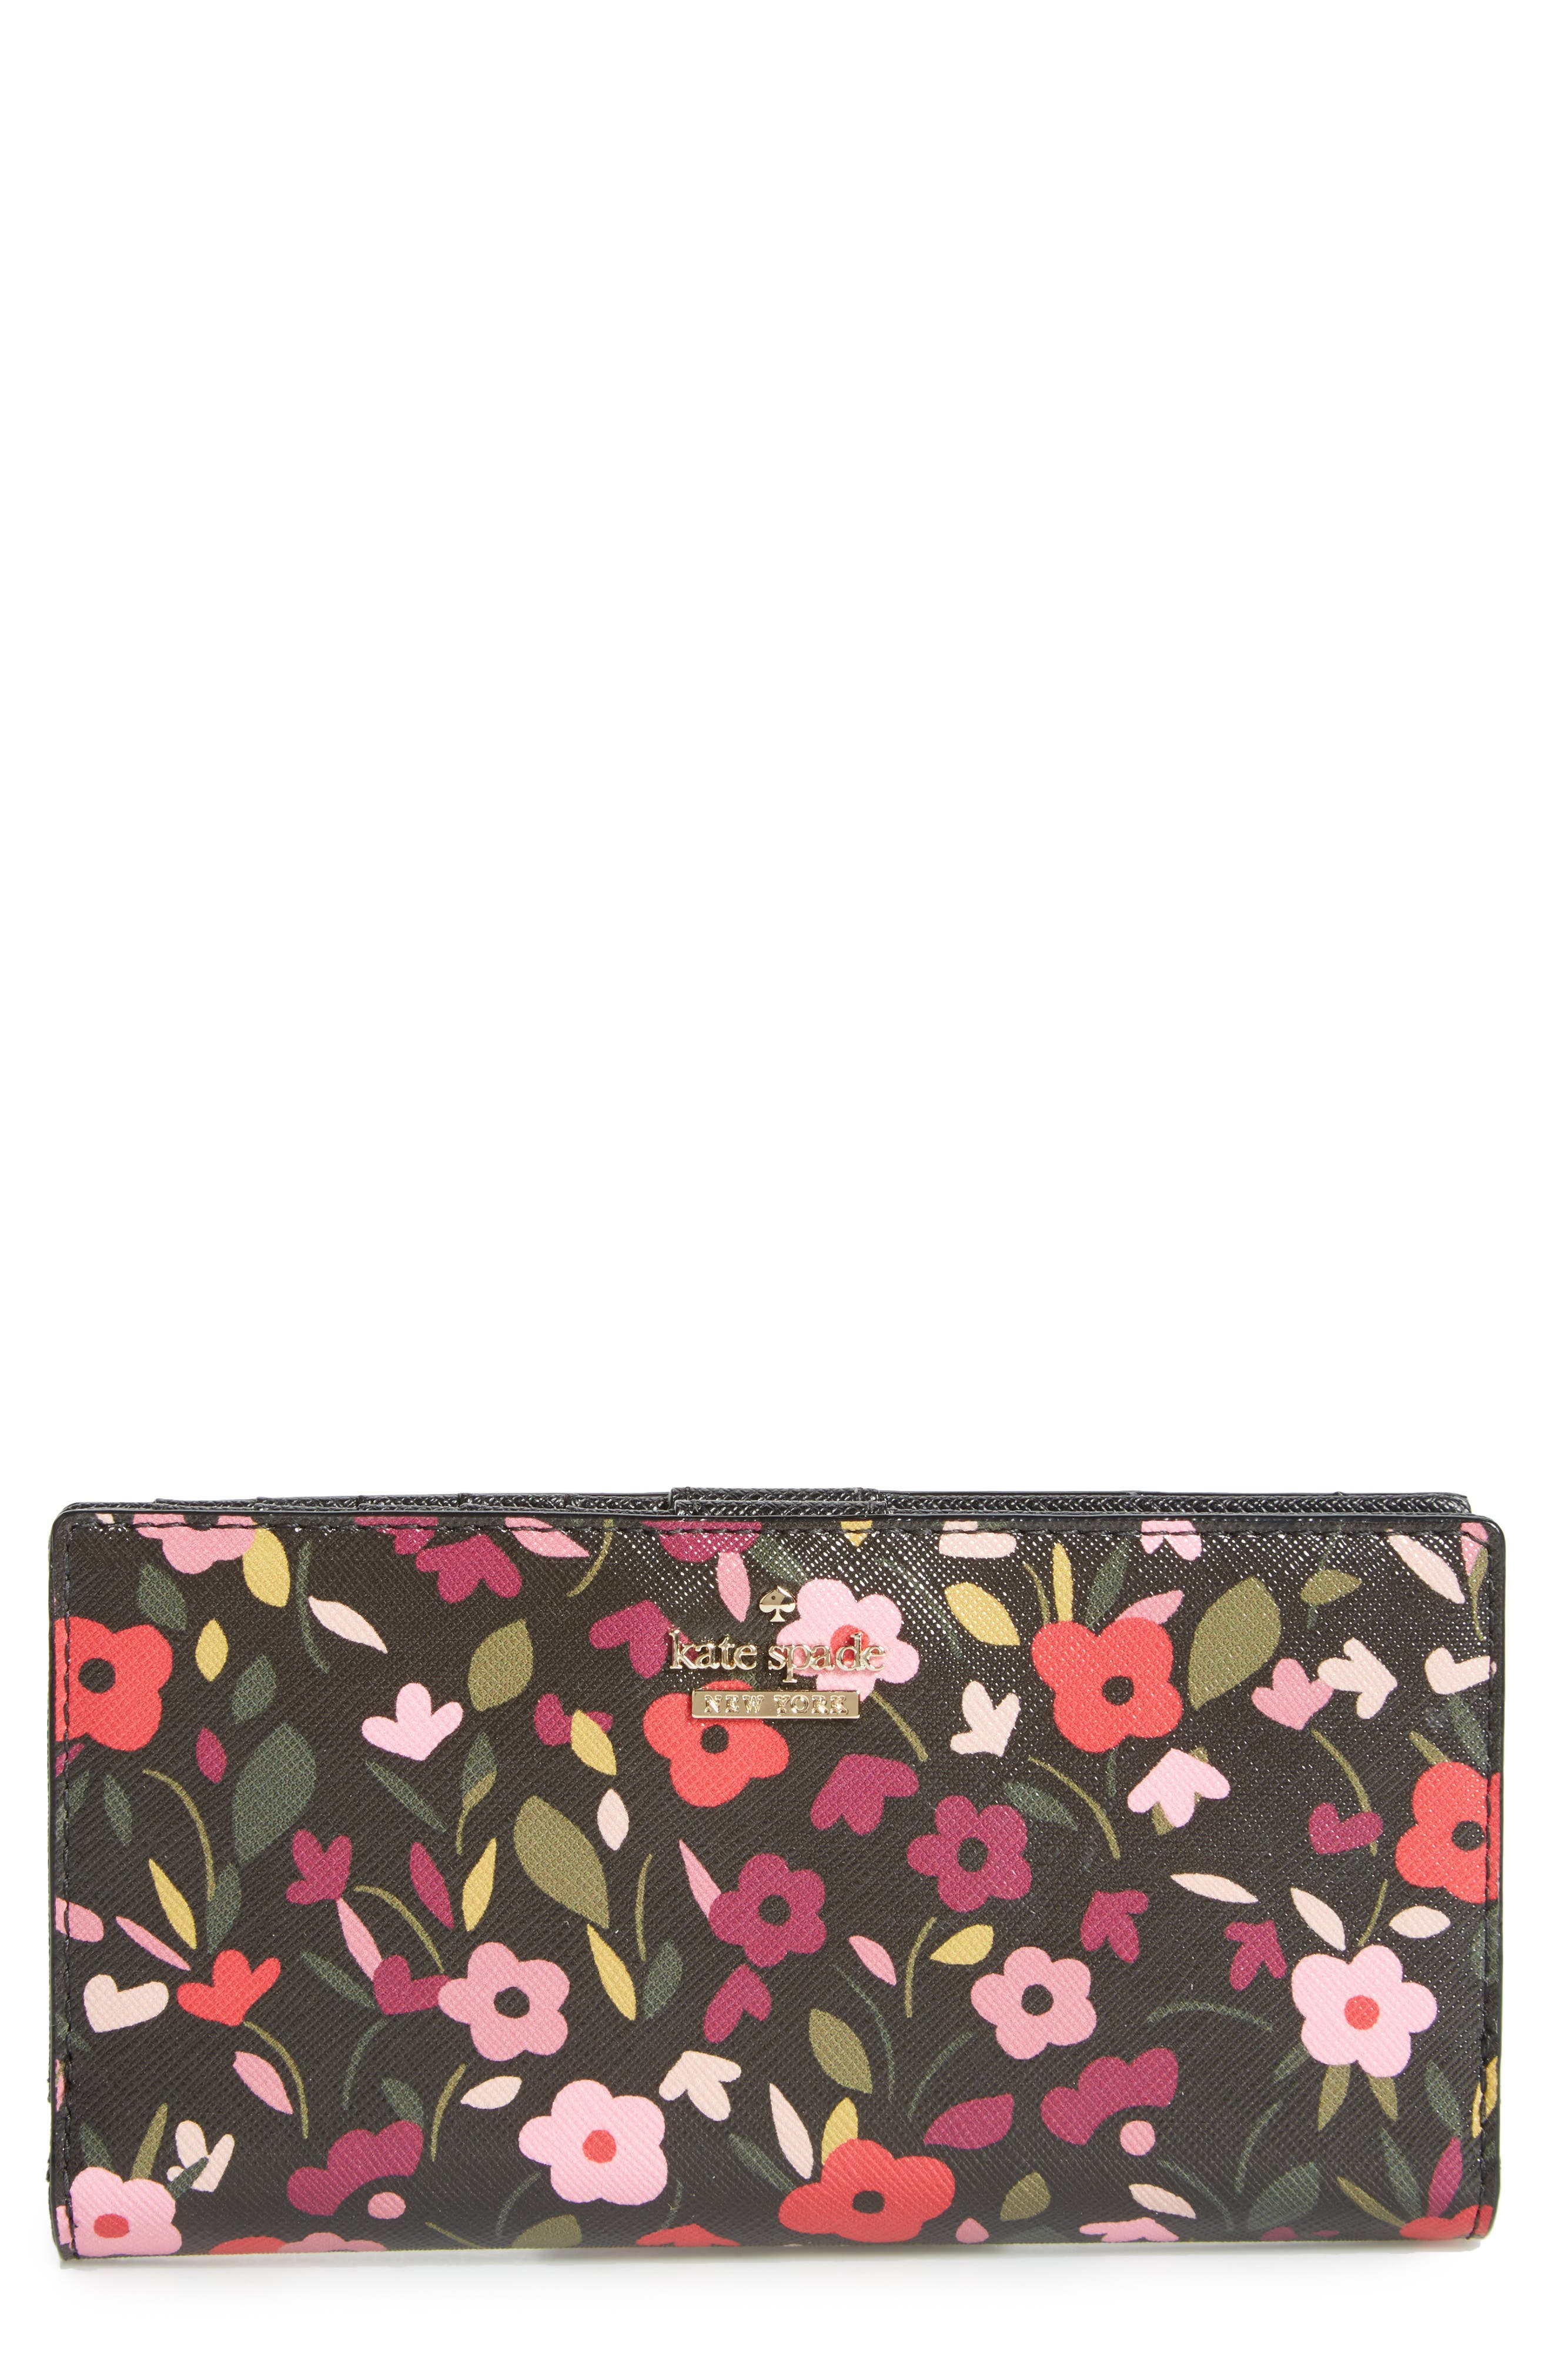 cameron street - stacy boho floral wallet,                         Main,                         color, 001